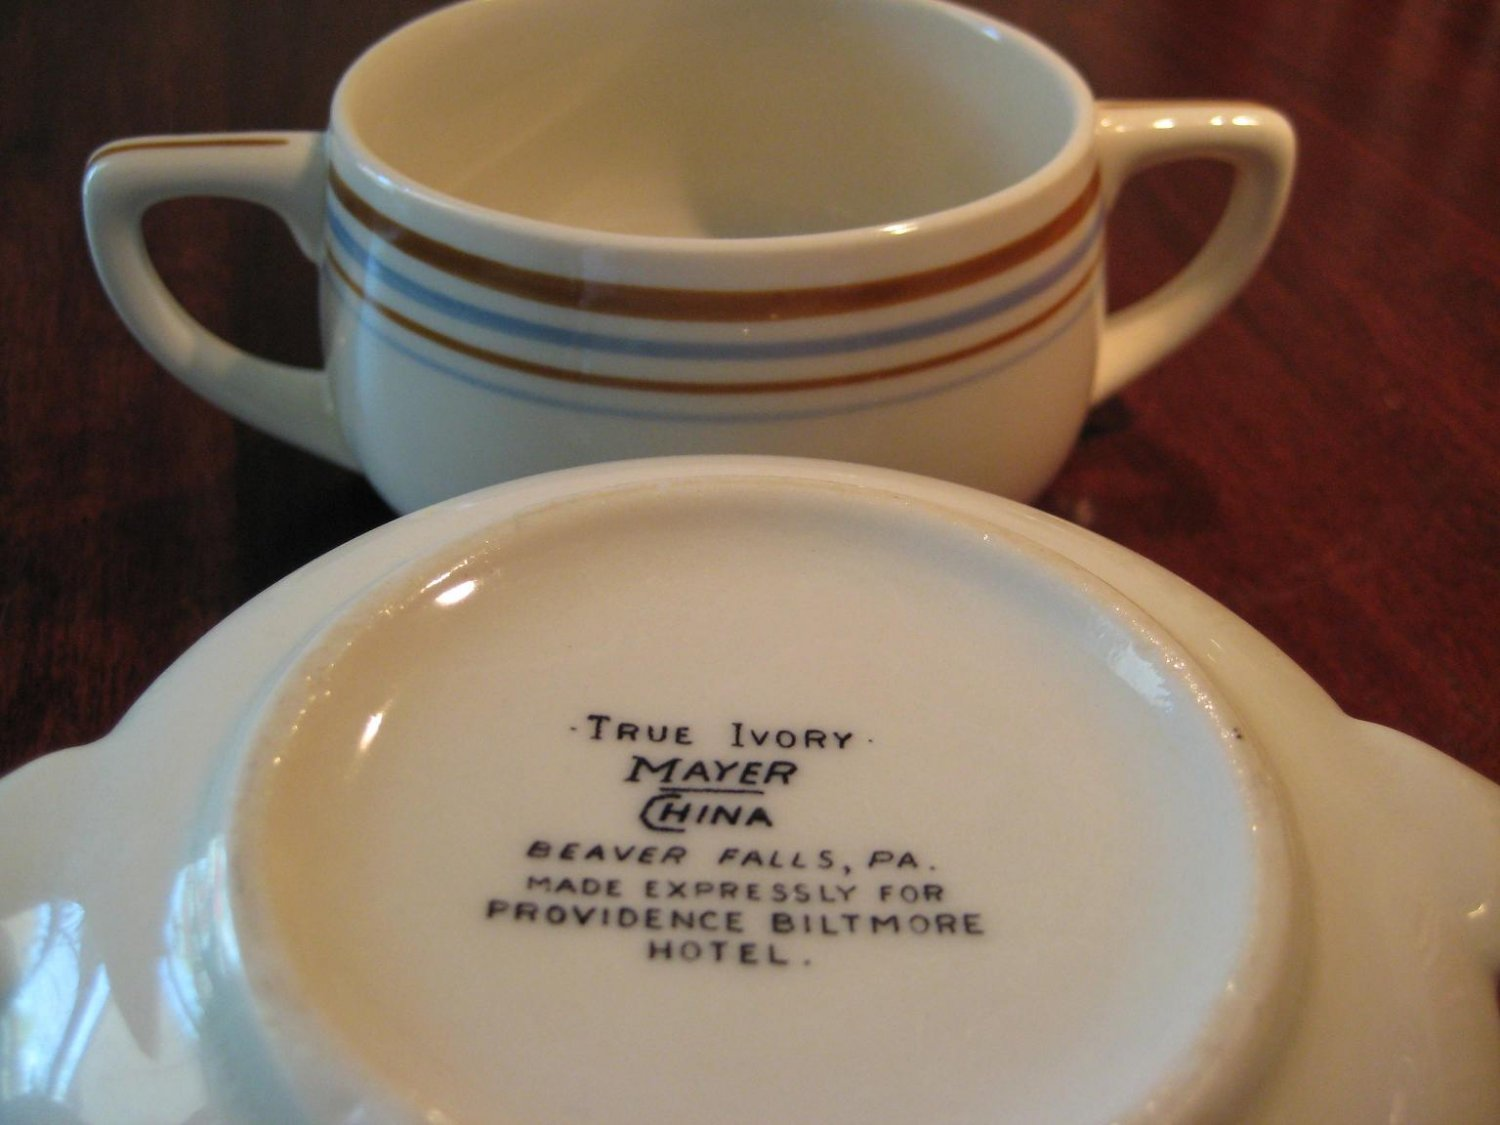 2 Mayer China Restaurant Ware Providence Biltmore Hotel Cream Soup Cups